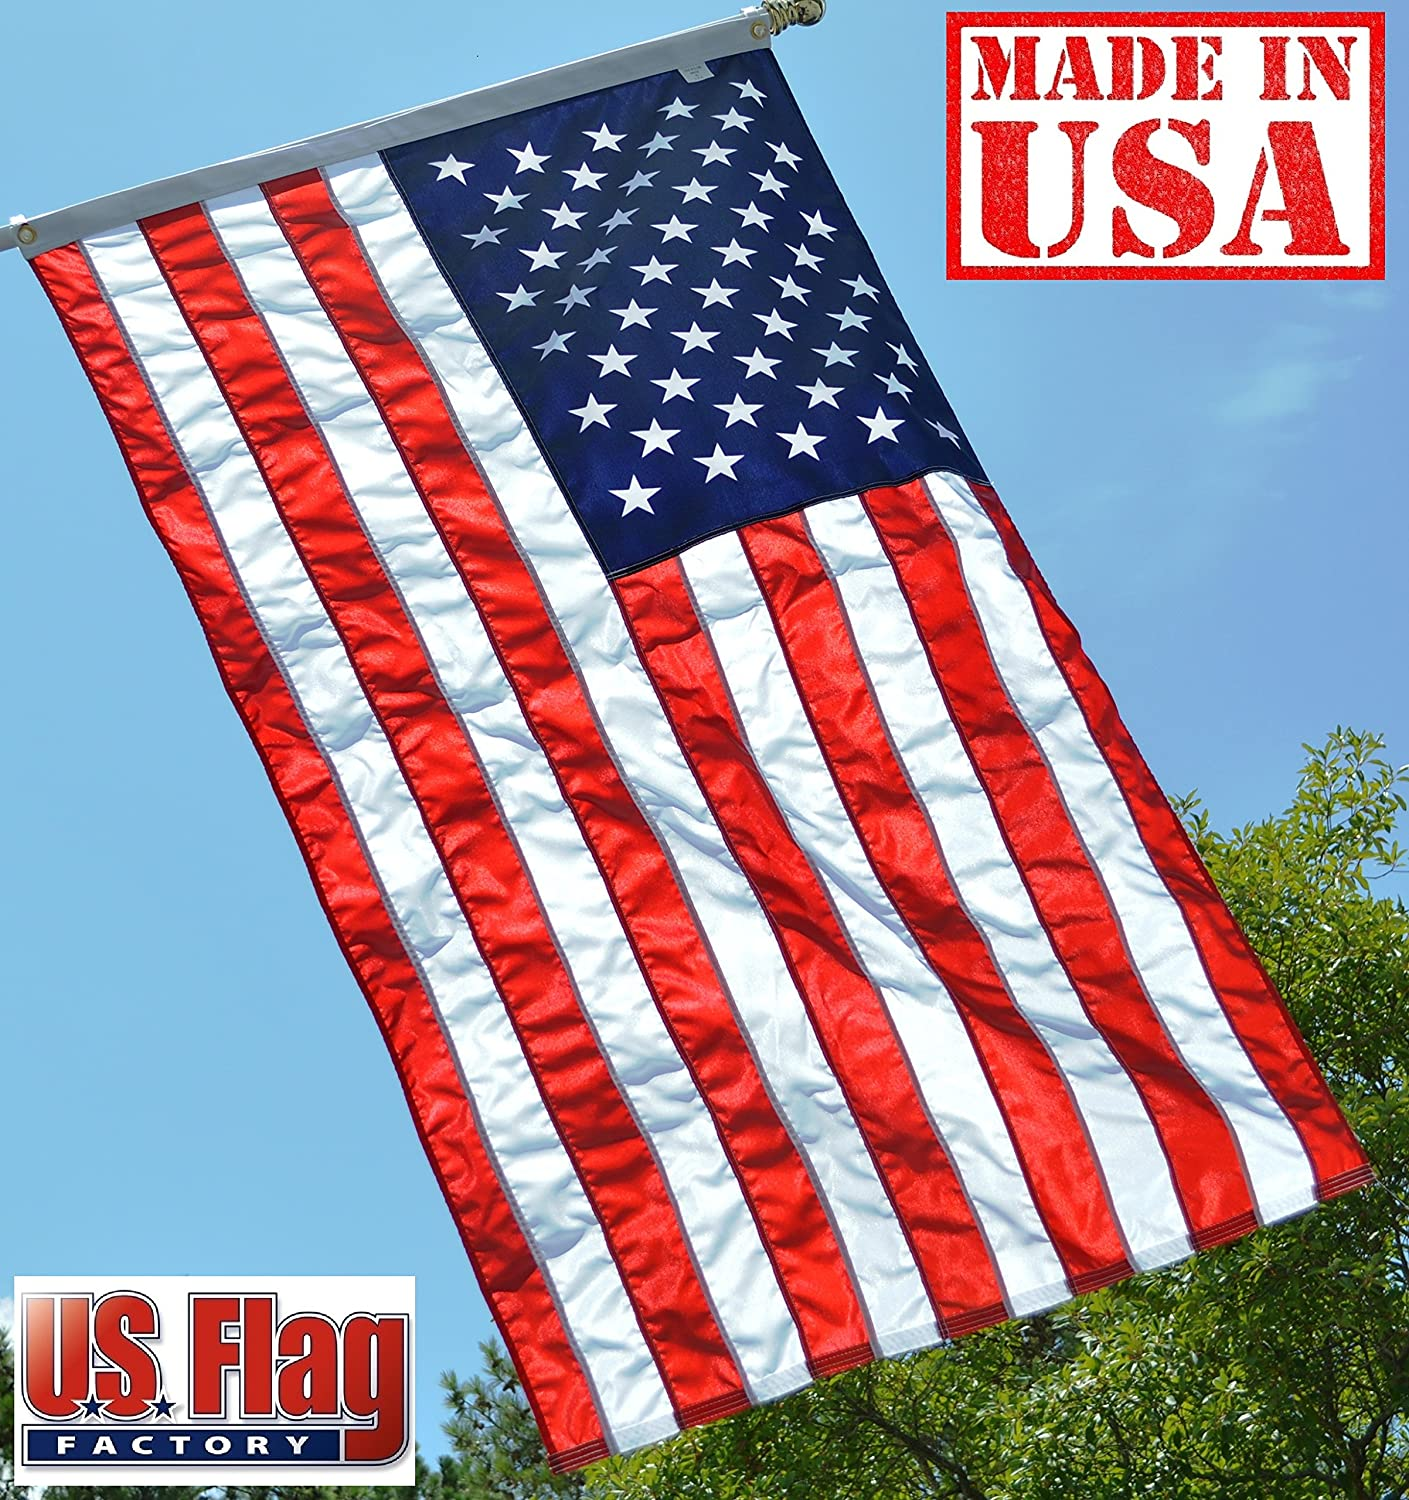 US Flag Factory 3x5 FT US American Flag (Sewn Stripes, Printed Stars) Outdoor SolarMax Nylon - Made in America